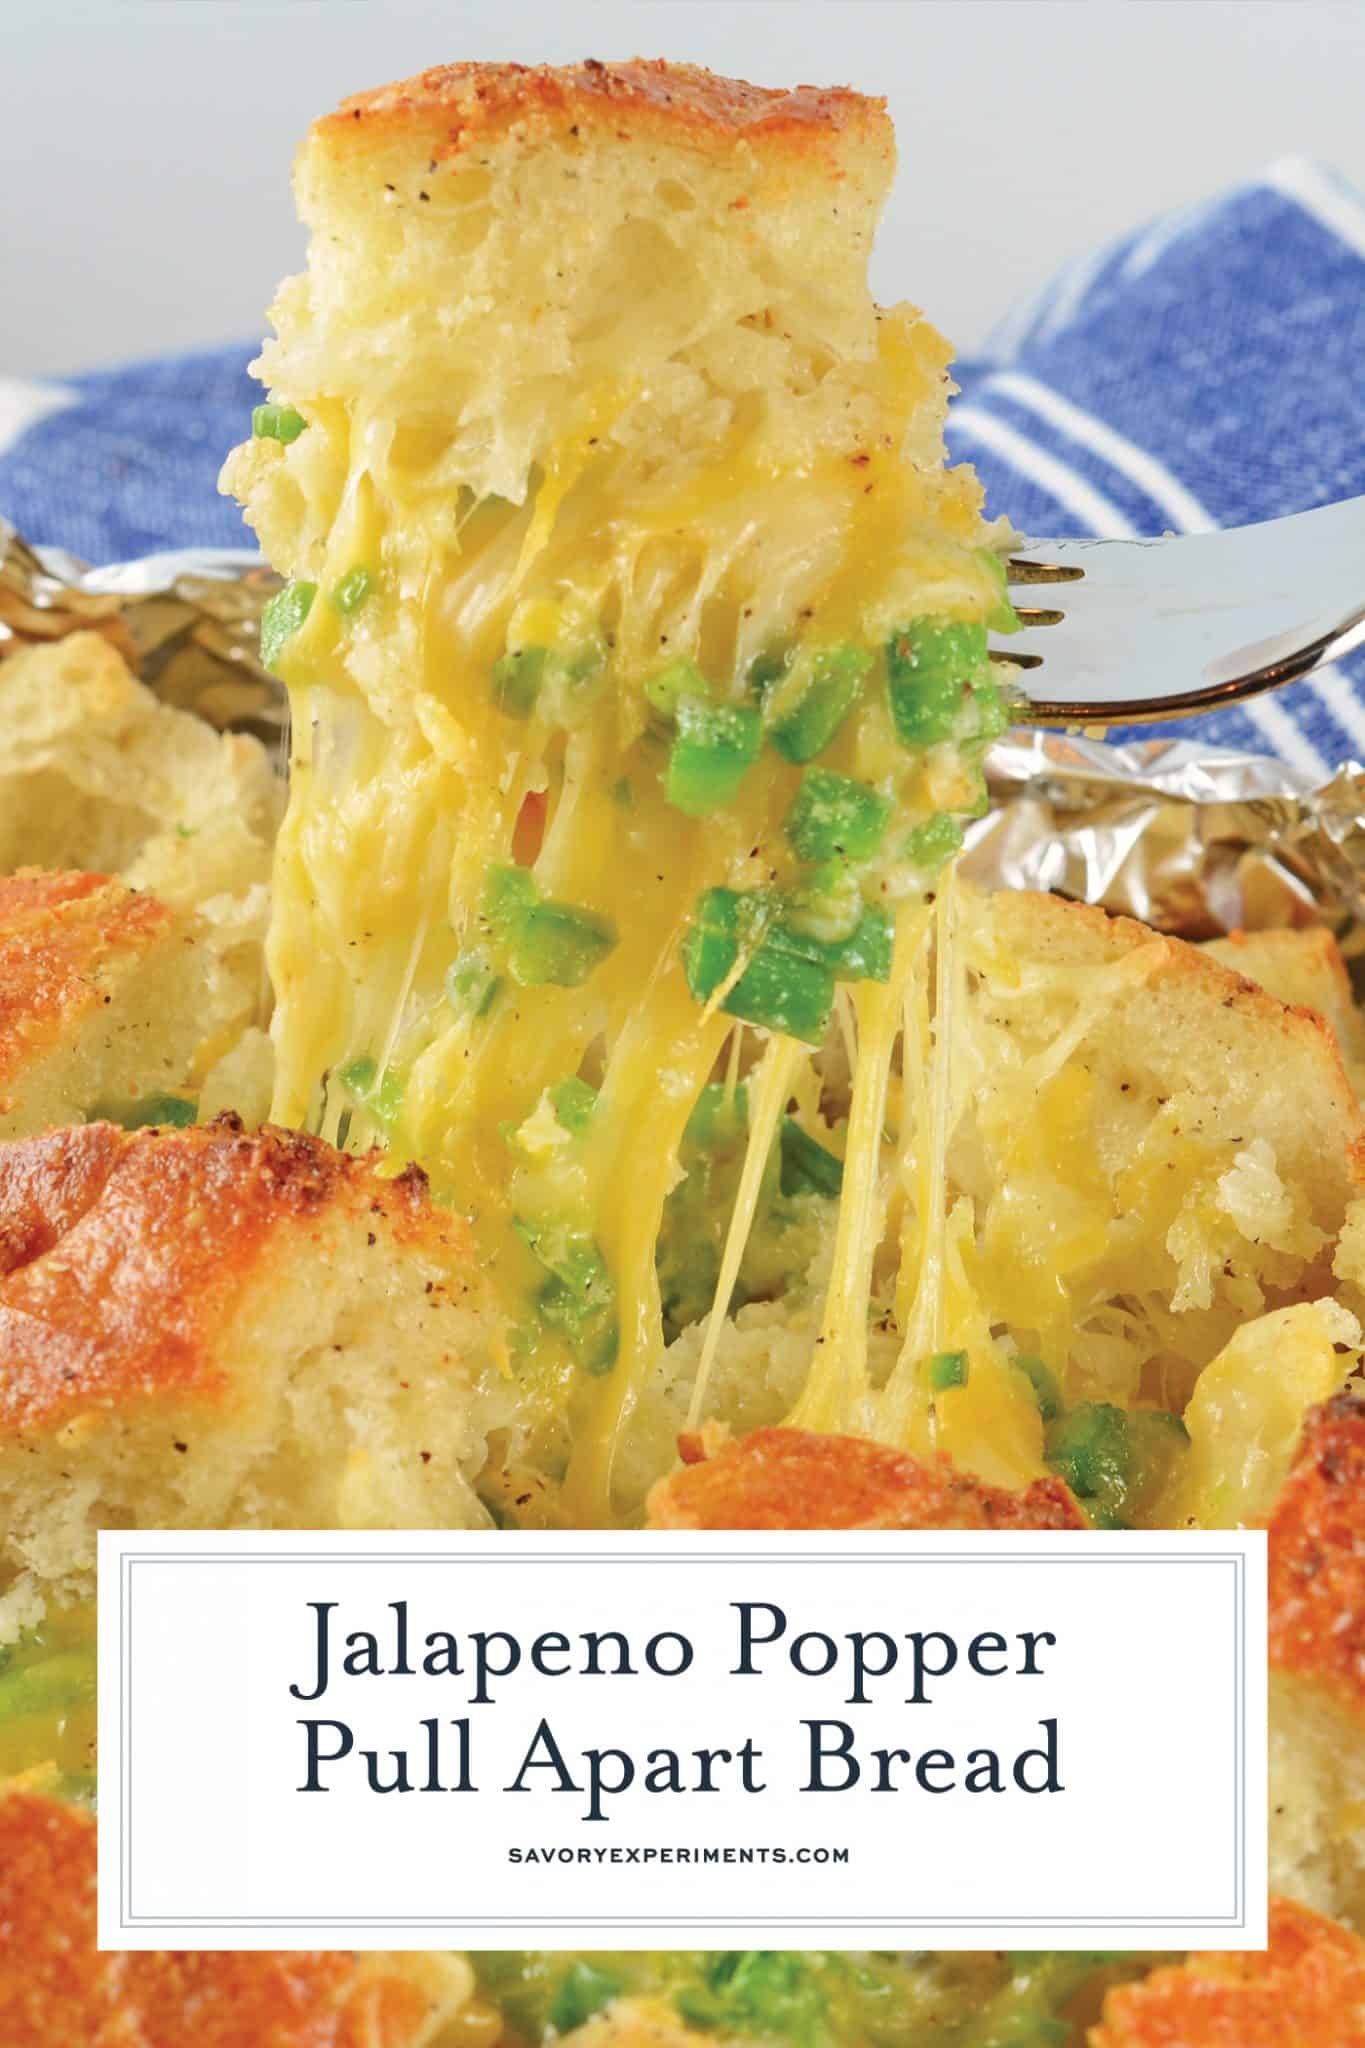 Jalapeno Popper Pull Apart Bread is spicy, cheesy and perfect for any dining occasion. Use it as an appetizer, side dish or a snack! #cheesybread #jalapenopopperbread www.savoryexperiments.com